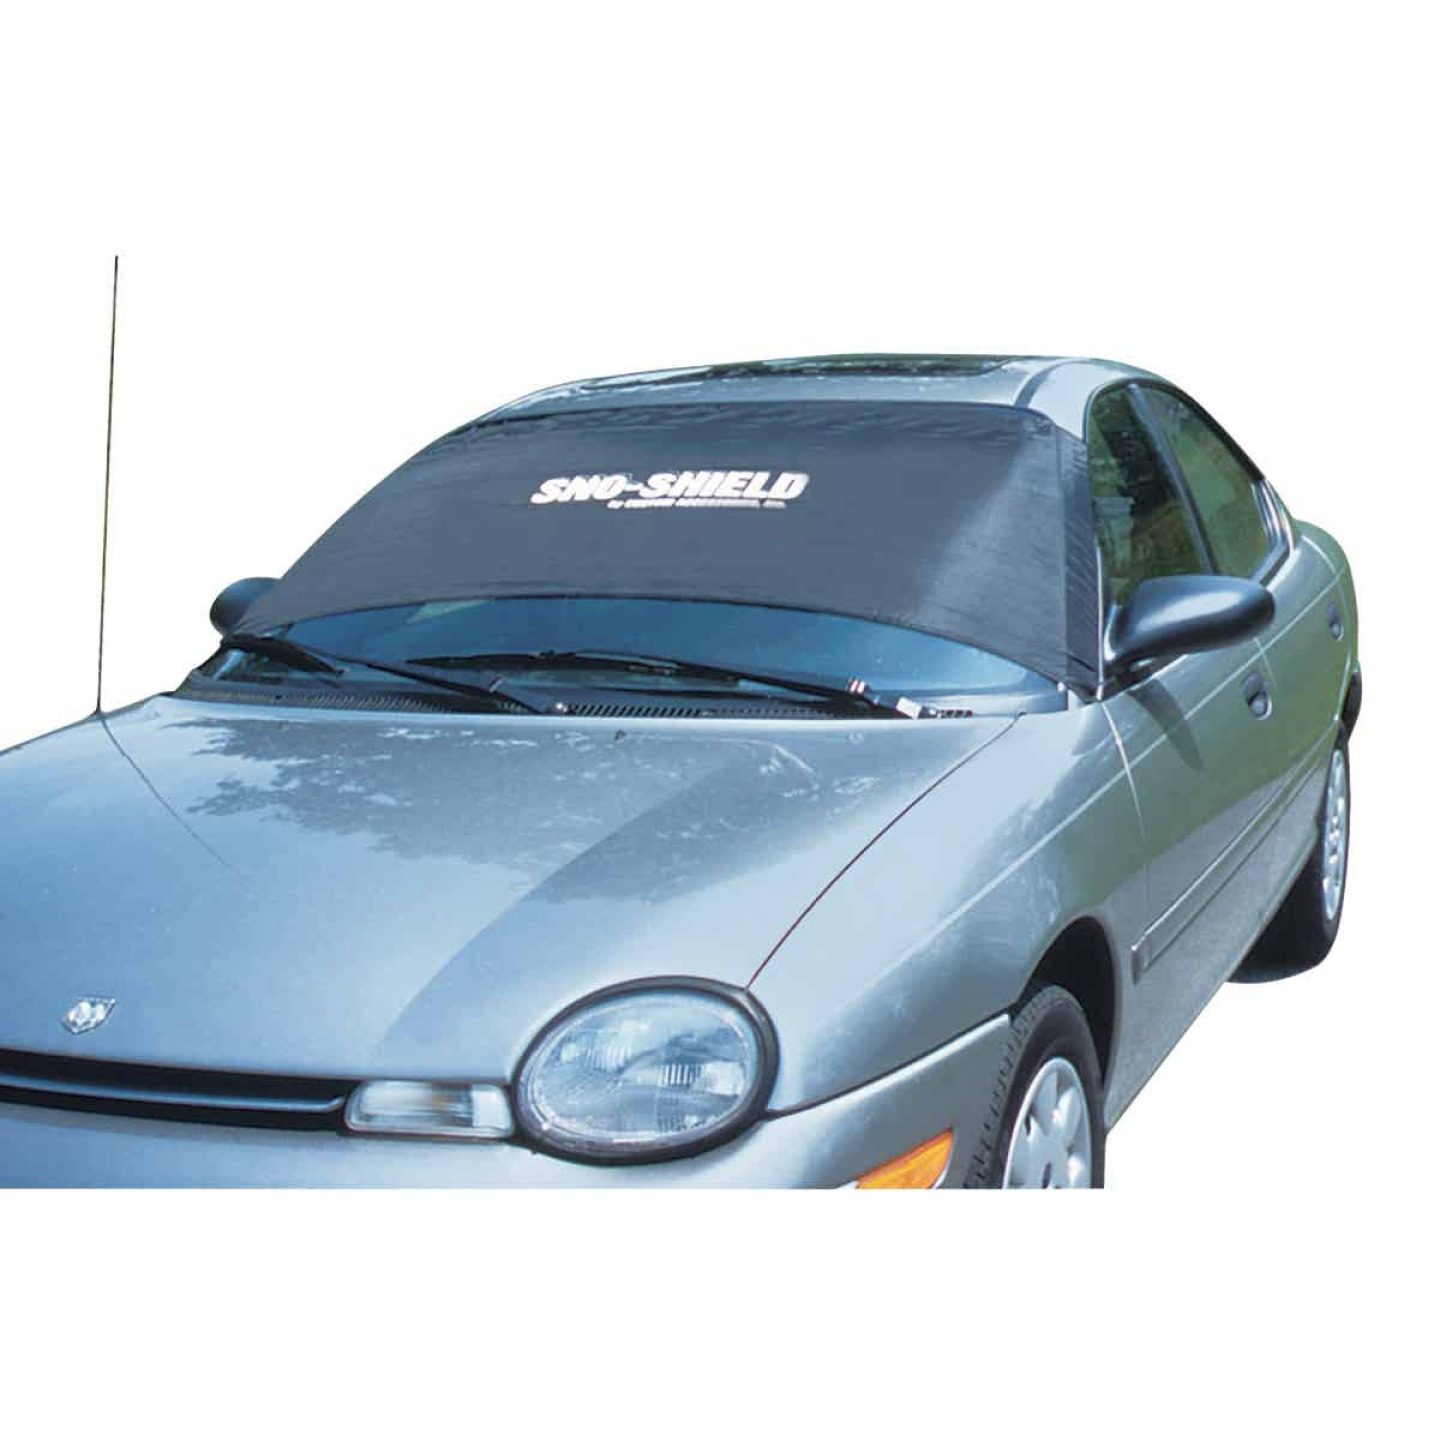 Sno-Shield 78 In. Nylon Windshield Cover Image 5